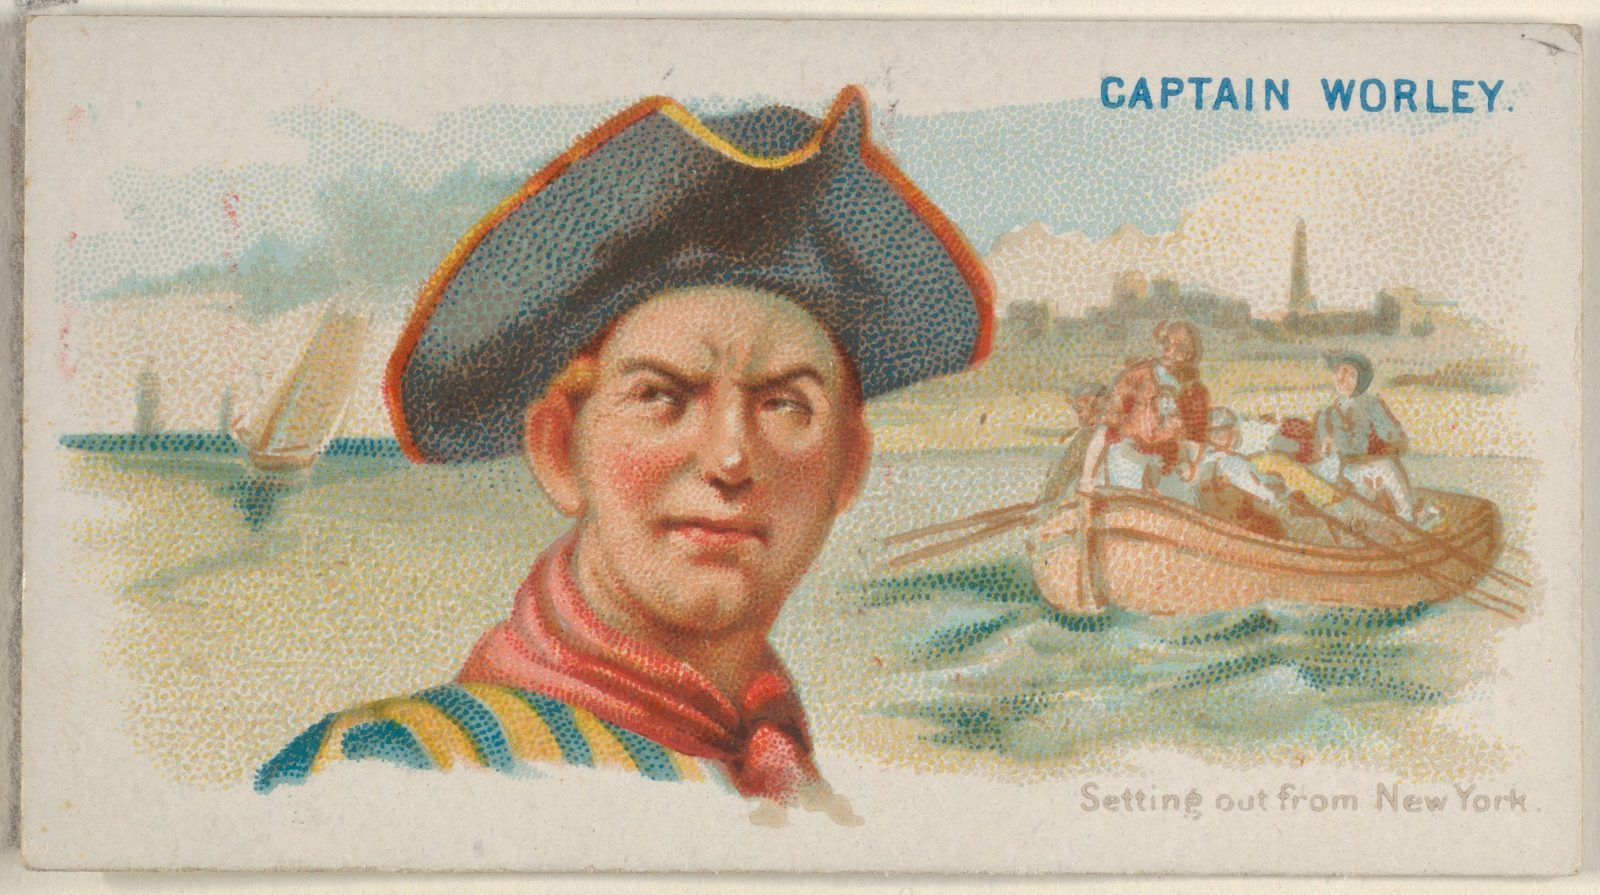 Captain Worley, Setting out from New York, from the Pirates of the Spanish Main series (N19) for Allen & Ginter Cigarettes